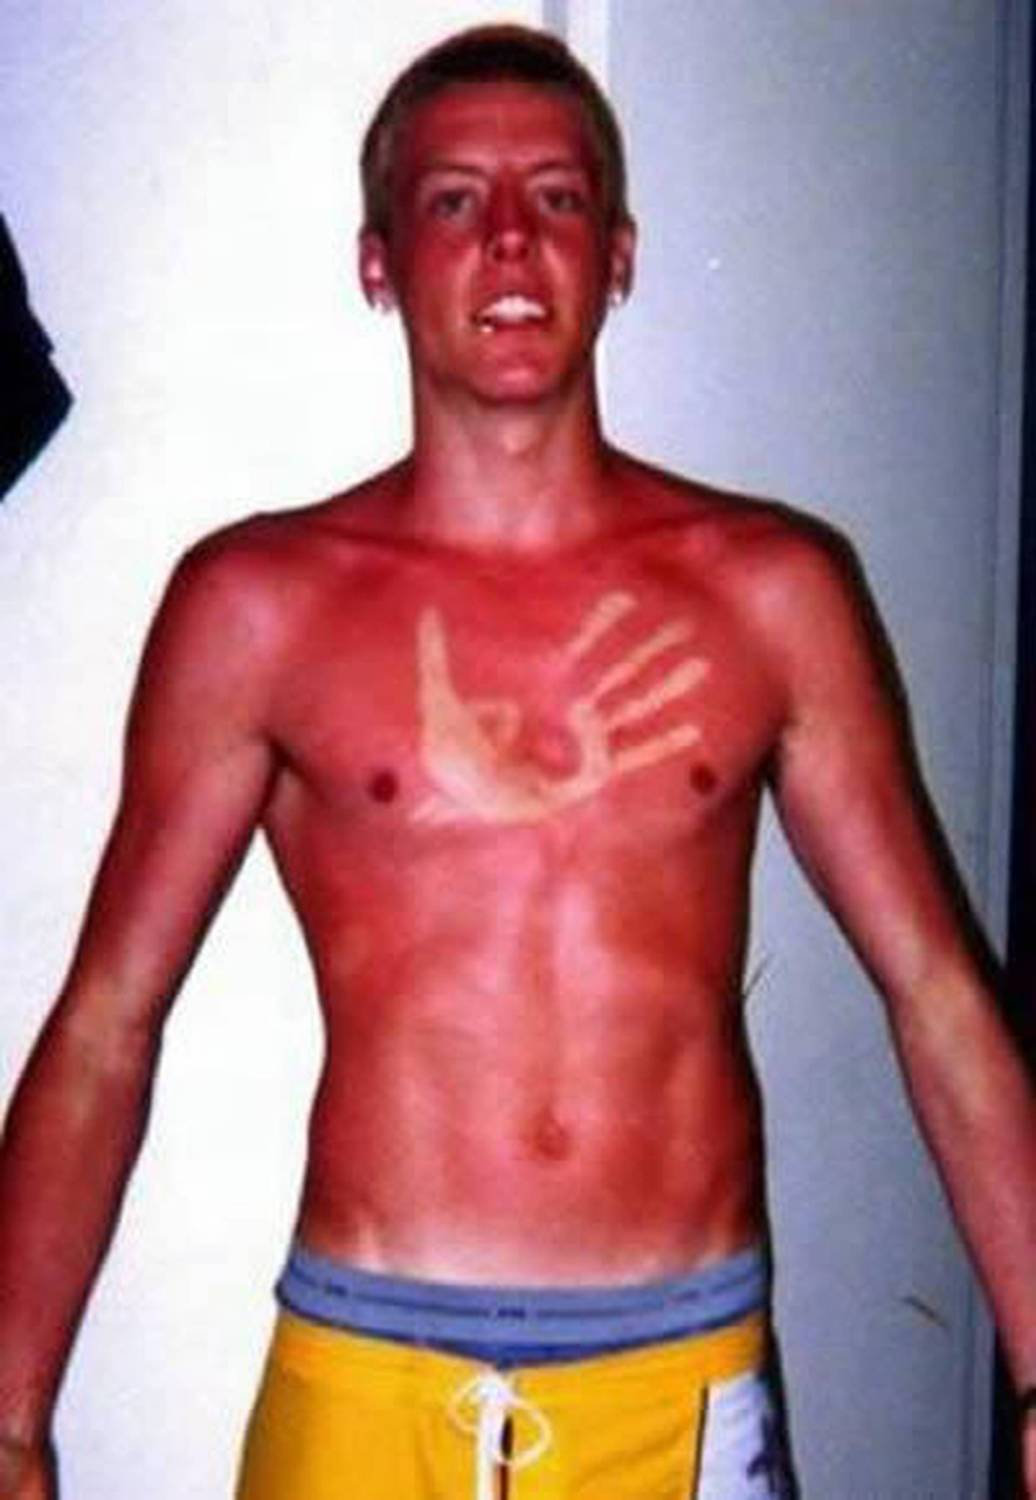 Some Of The Worst Sunburns On The Internet